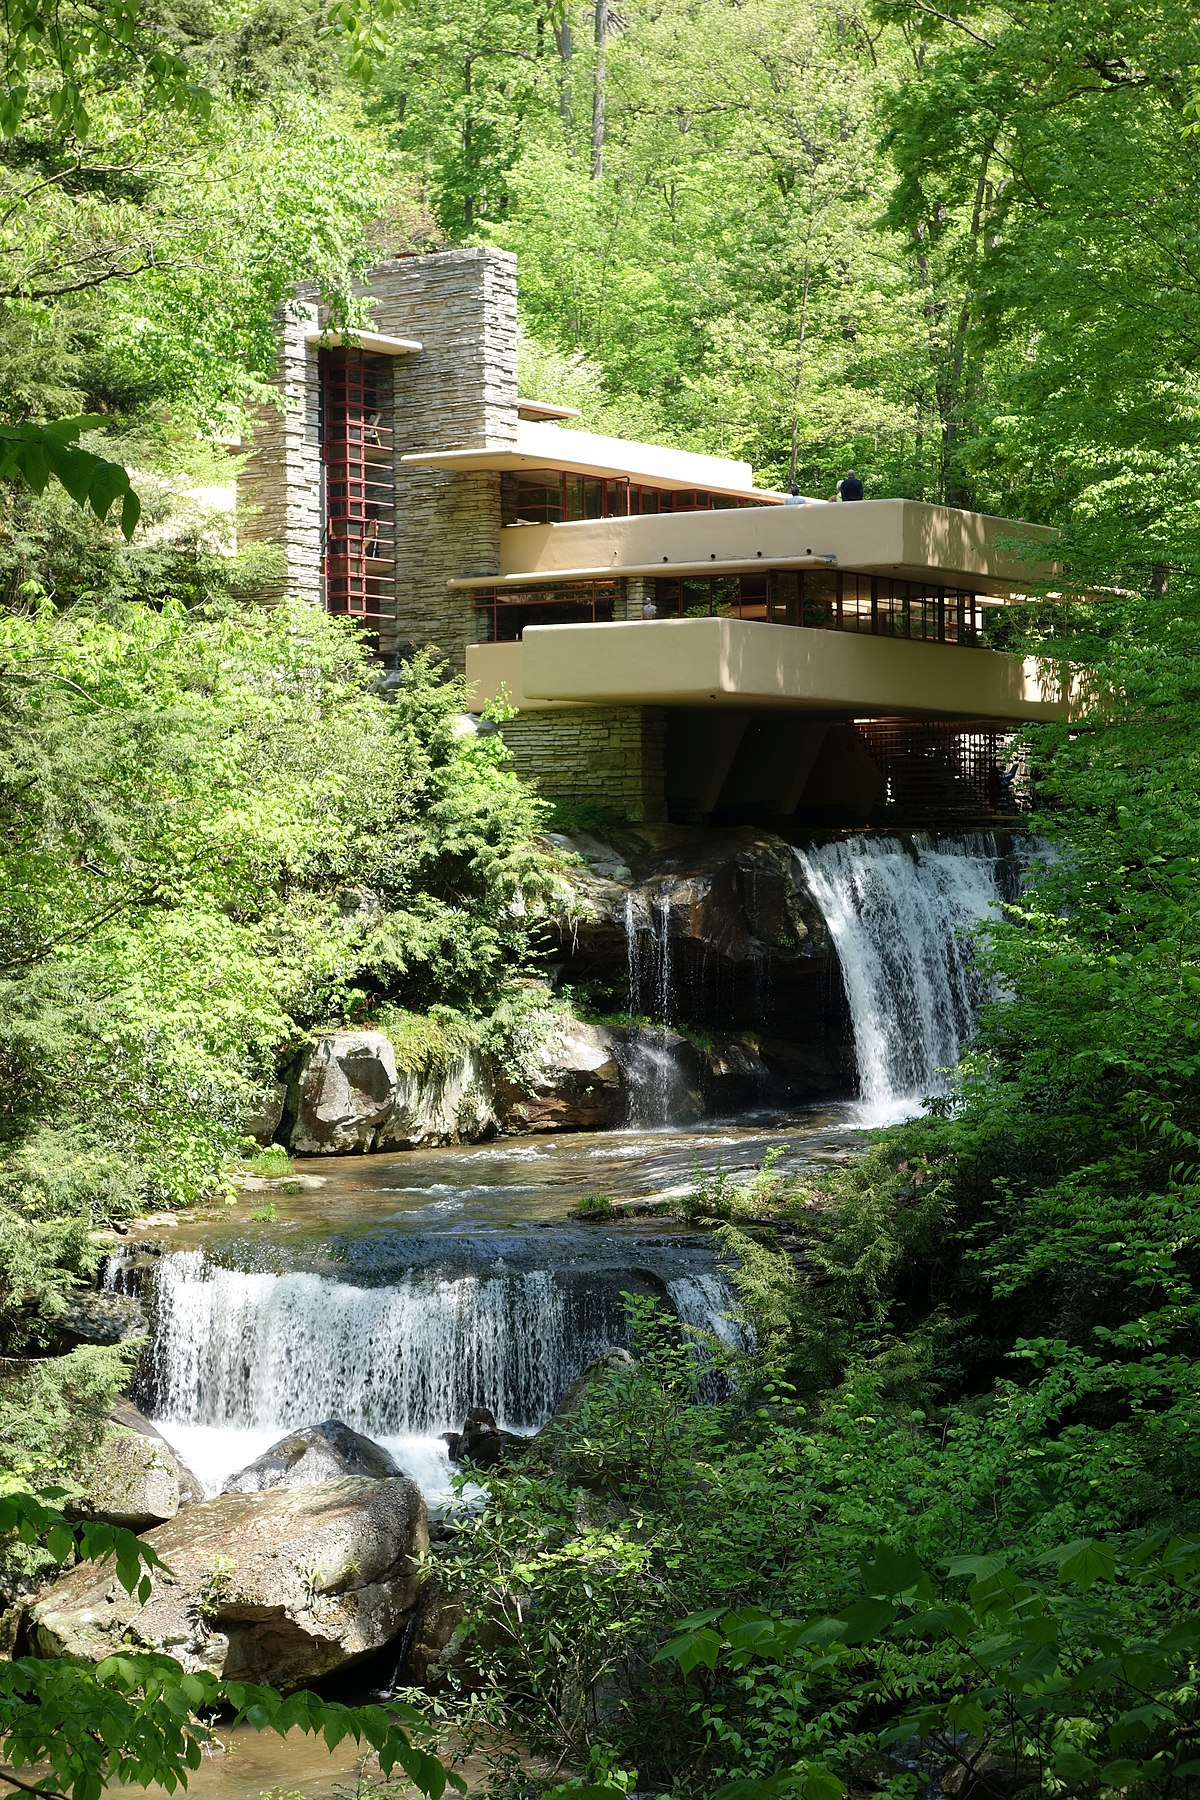 fallingwater wikipedia. Black Bedroom Furniture Sets. Home Design Ideas